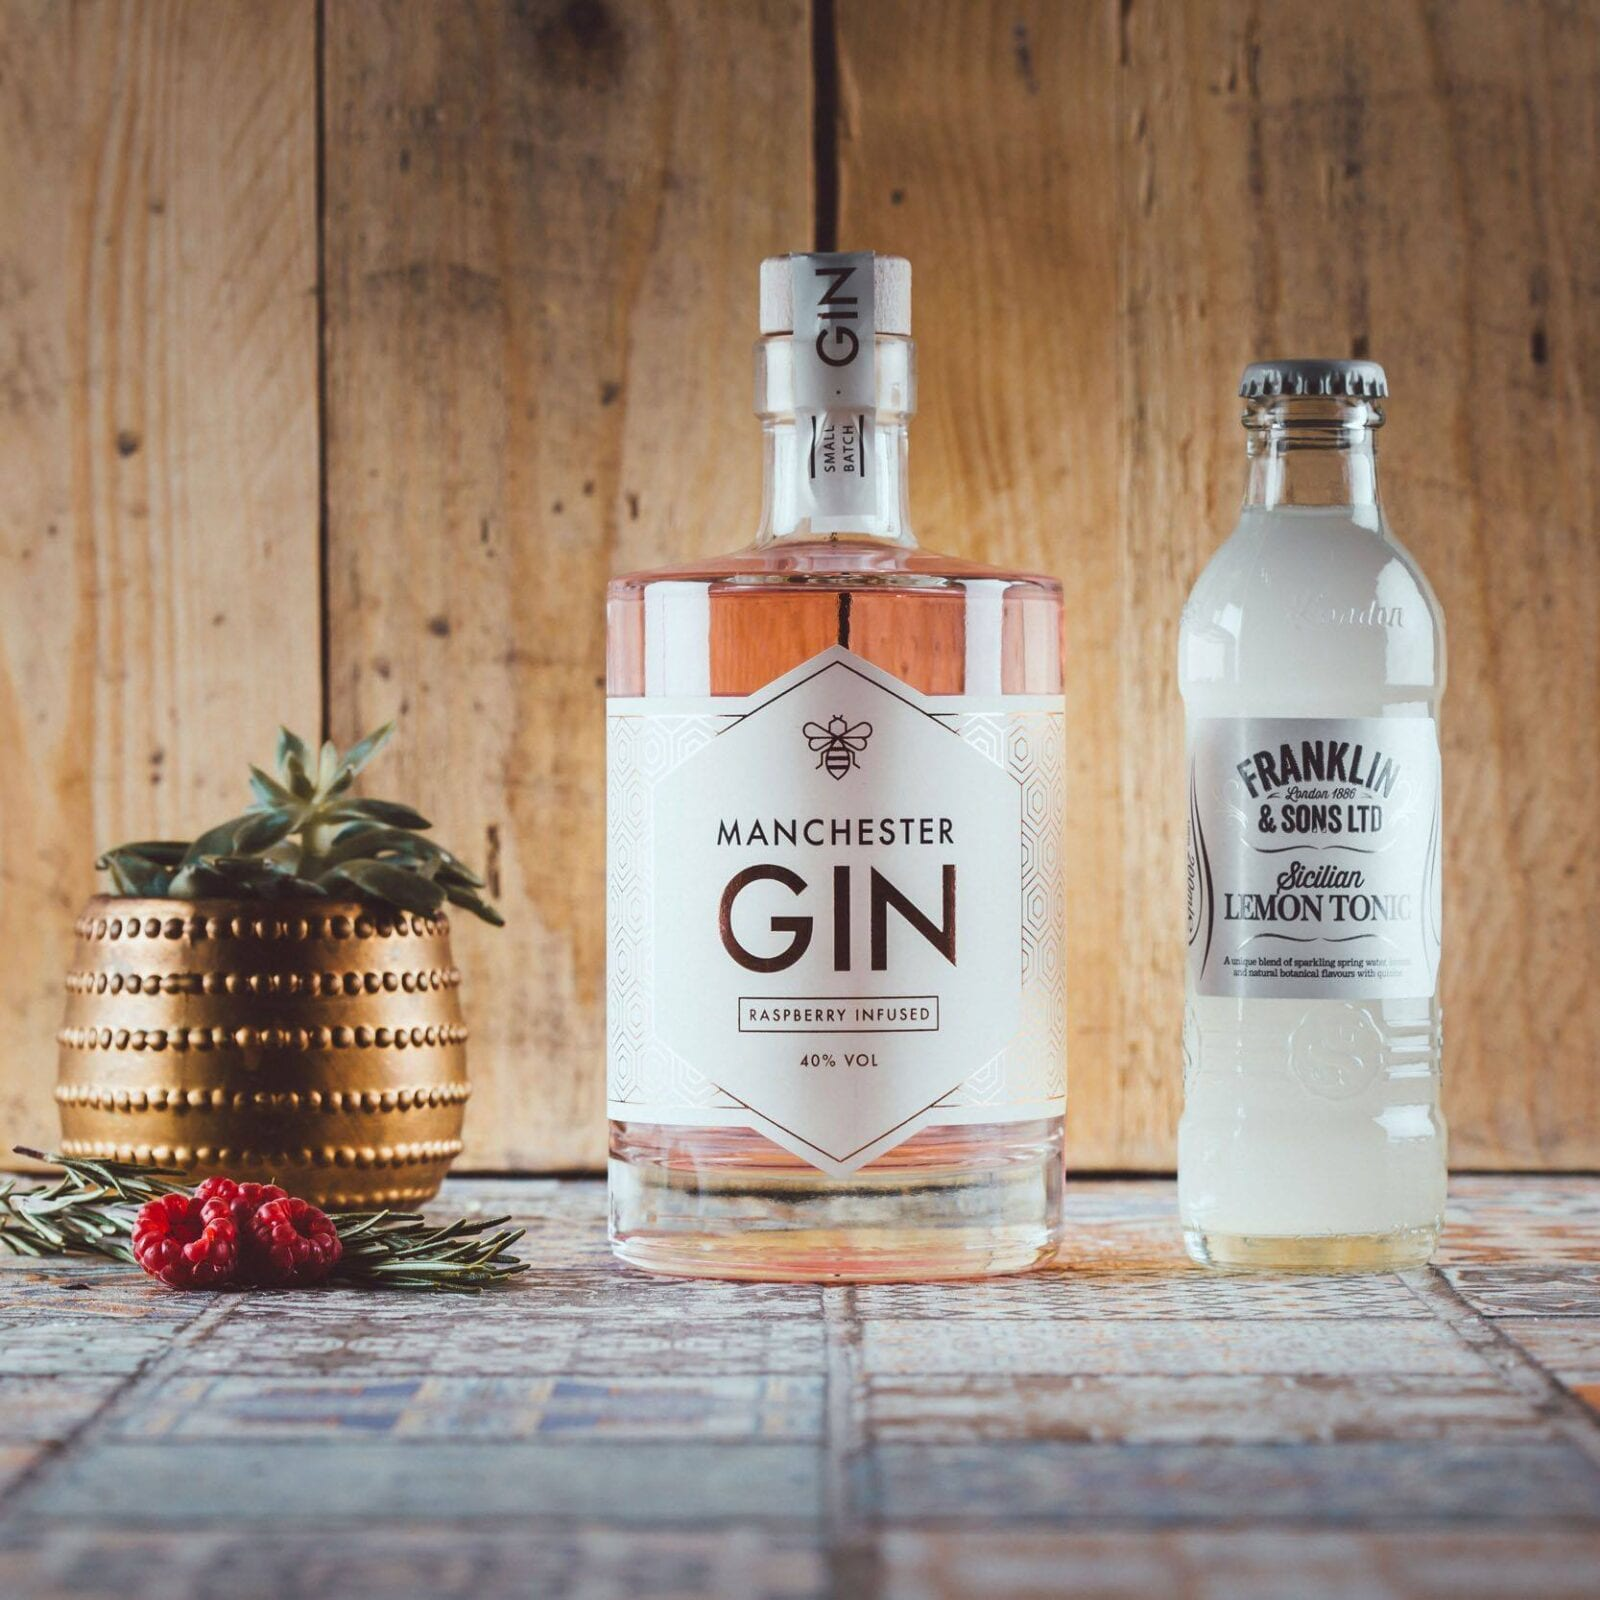 Franklin & Sons and Manchester Gin bring Raspberry G&T to the north, The Manc